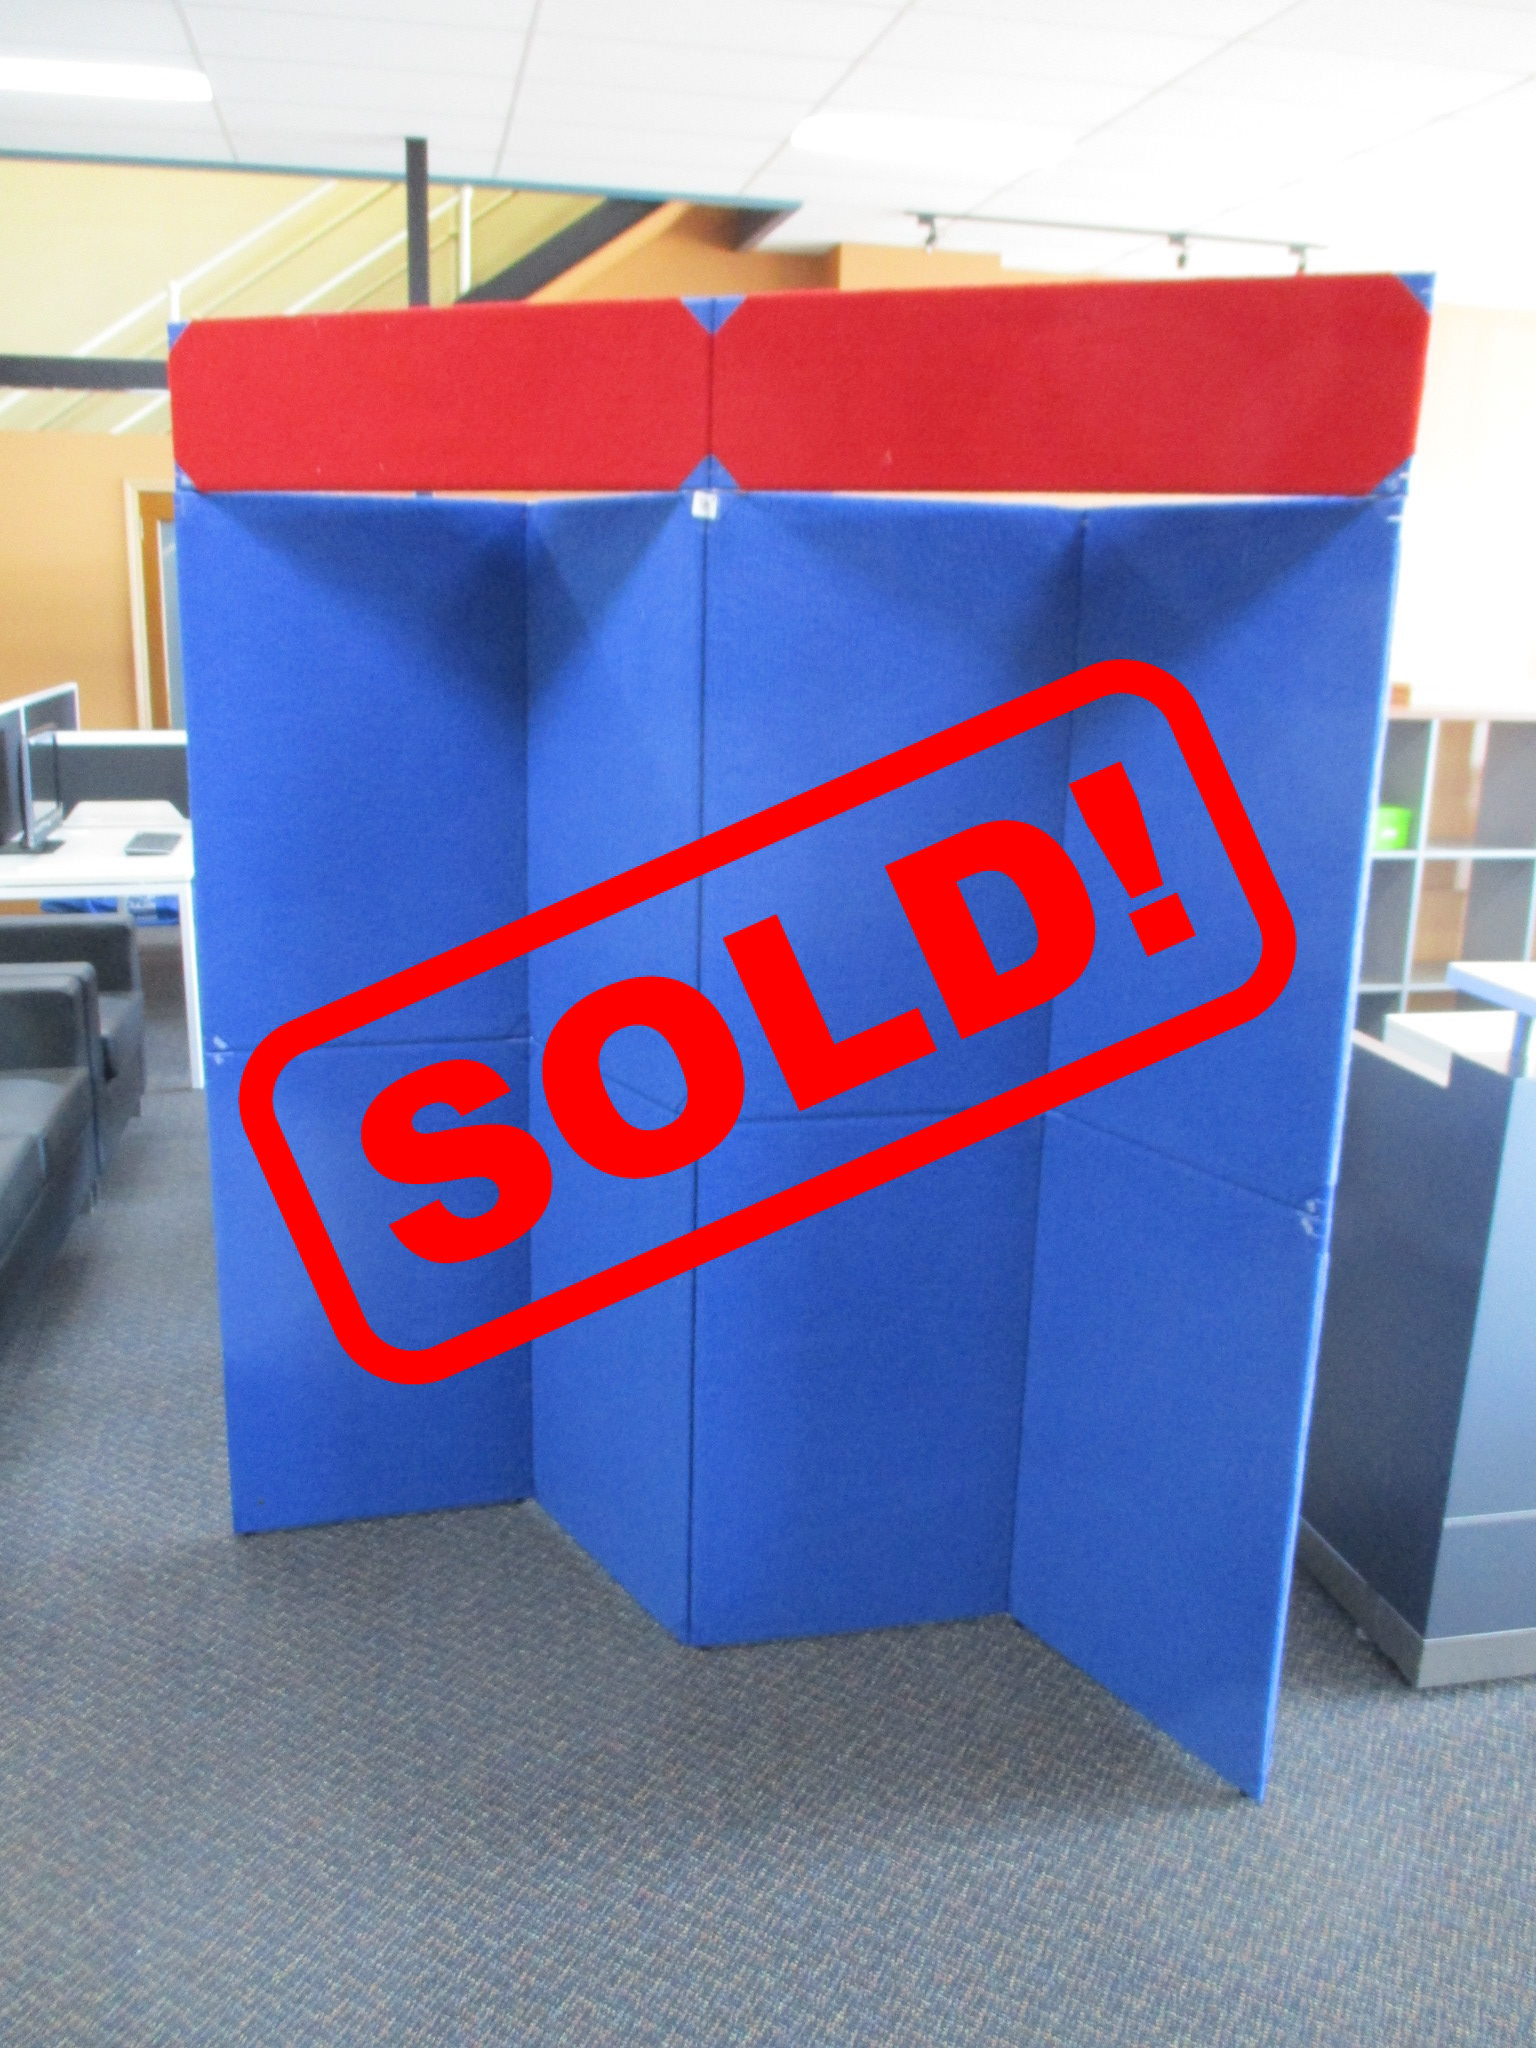 Toucan Fabric Display Board for Exhibitions